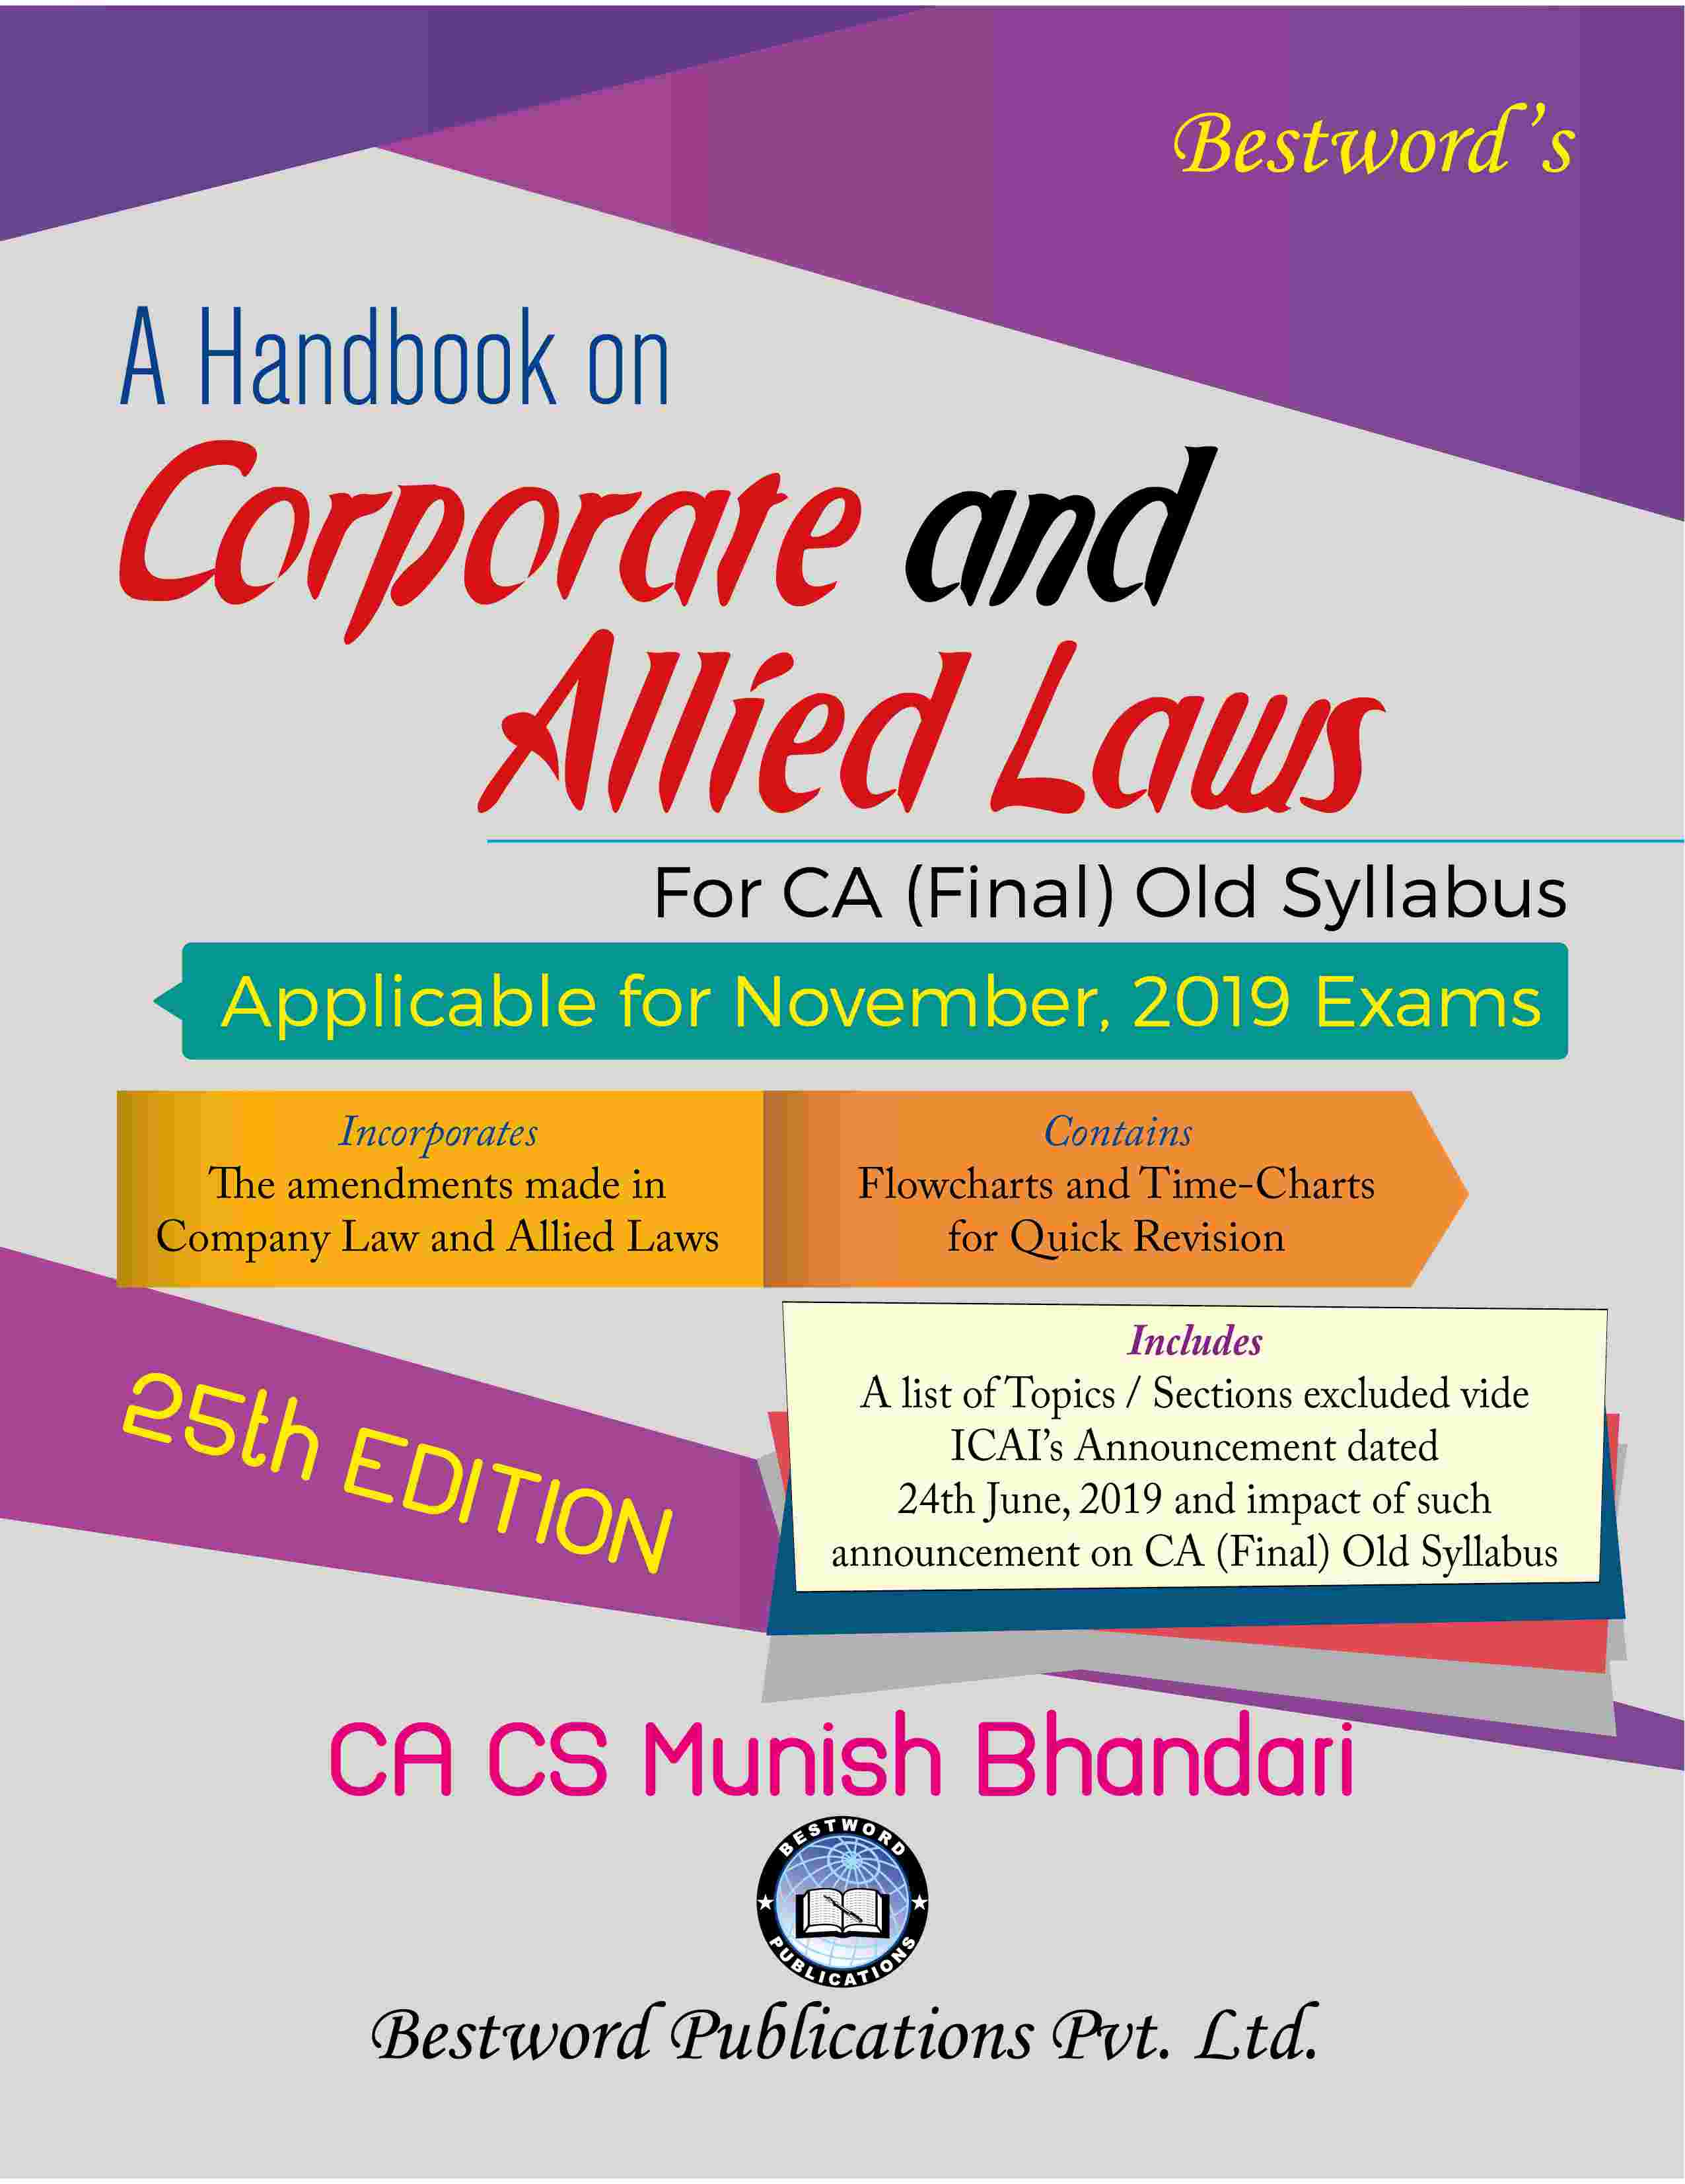 bestword's-a-handbook-on-corporate-and-allied-laws---by-ca-cs-munish-bhandari---25th-edition---for-ca-(final)-november,-2019-exams-(old-syllabus)